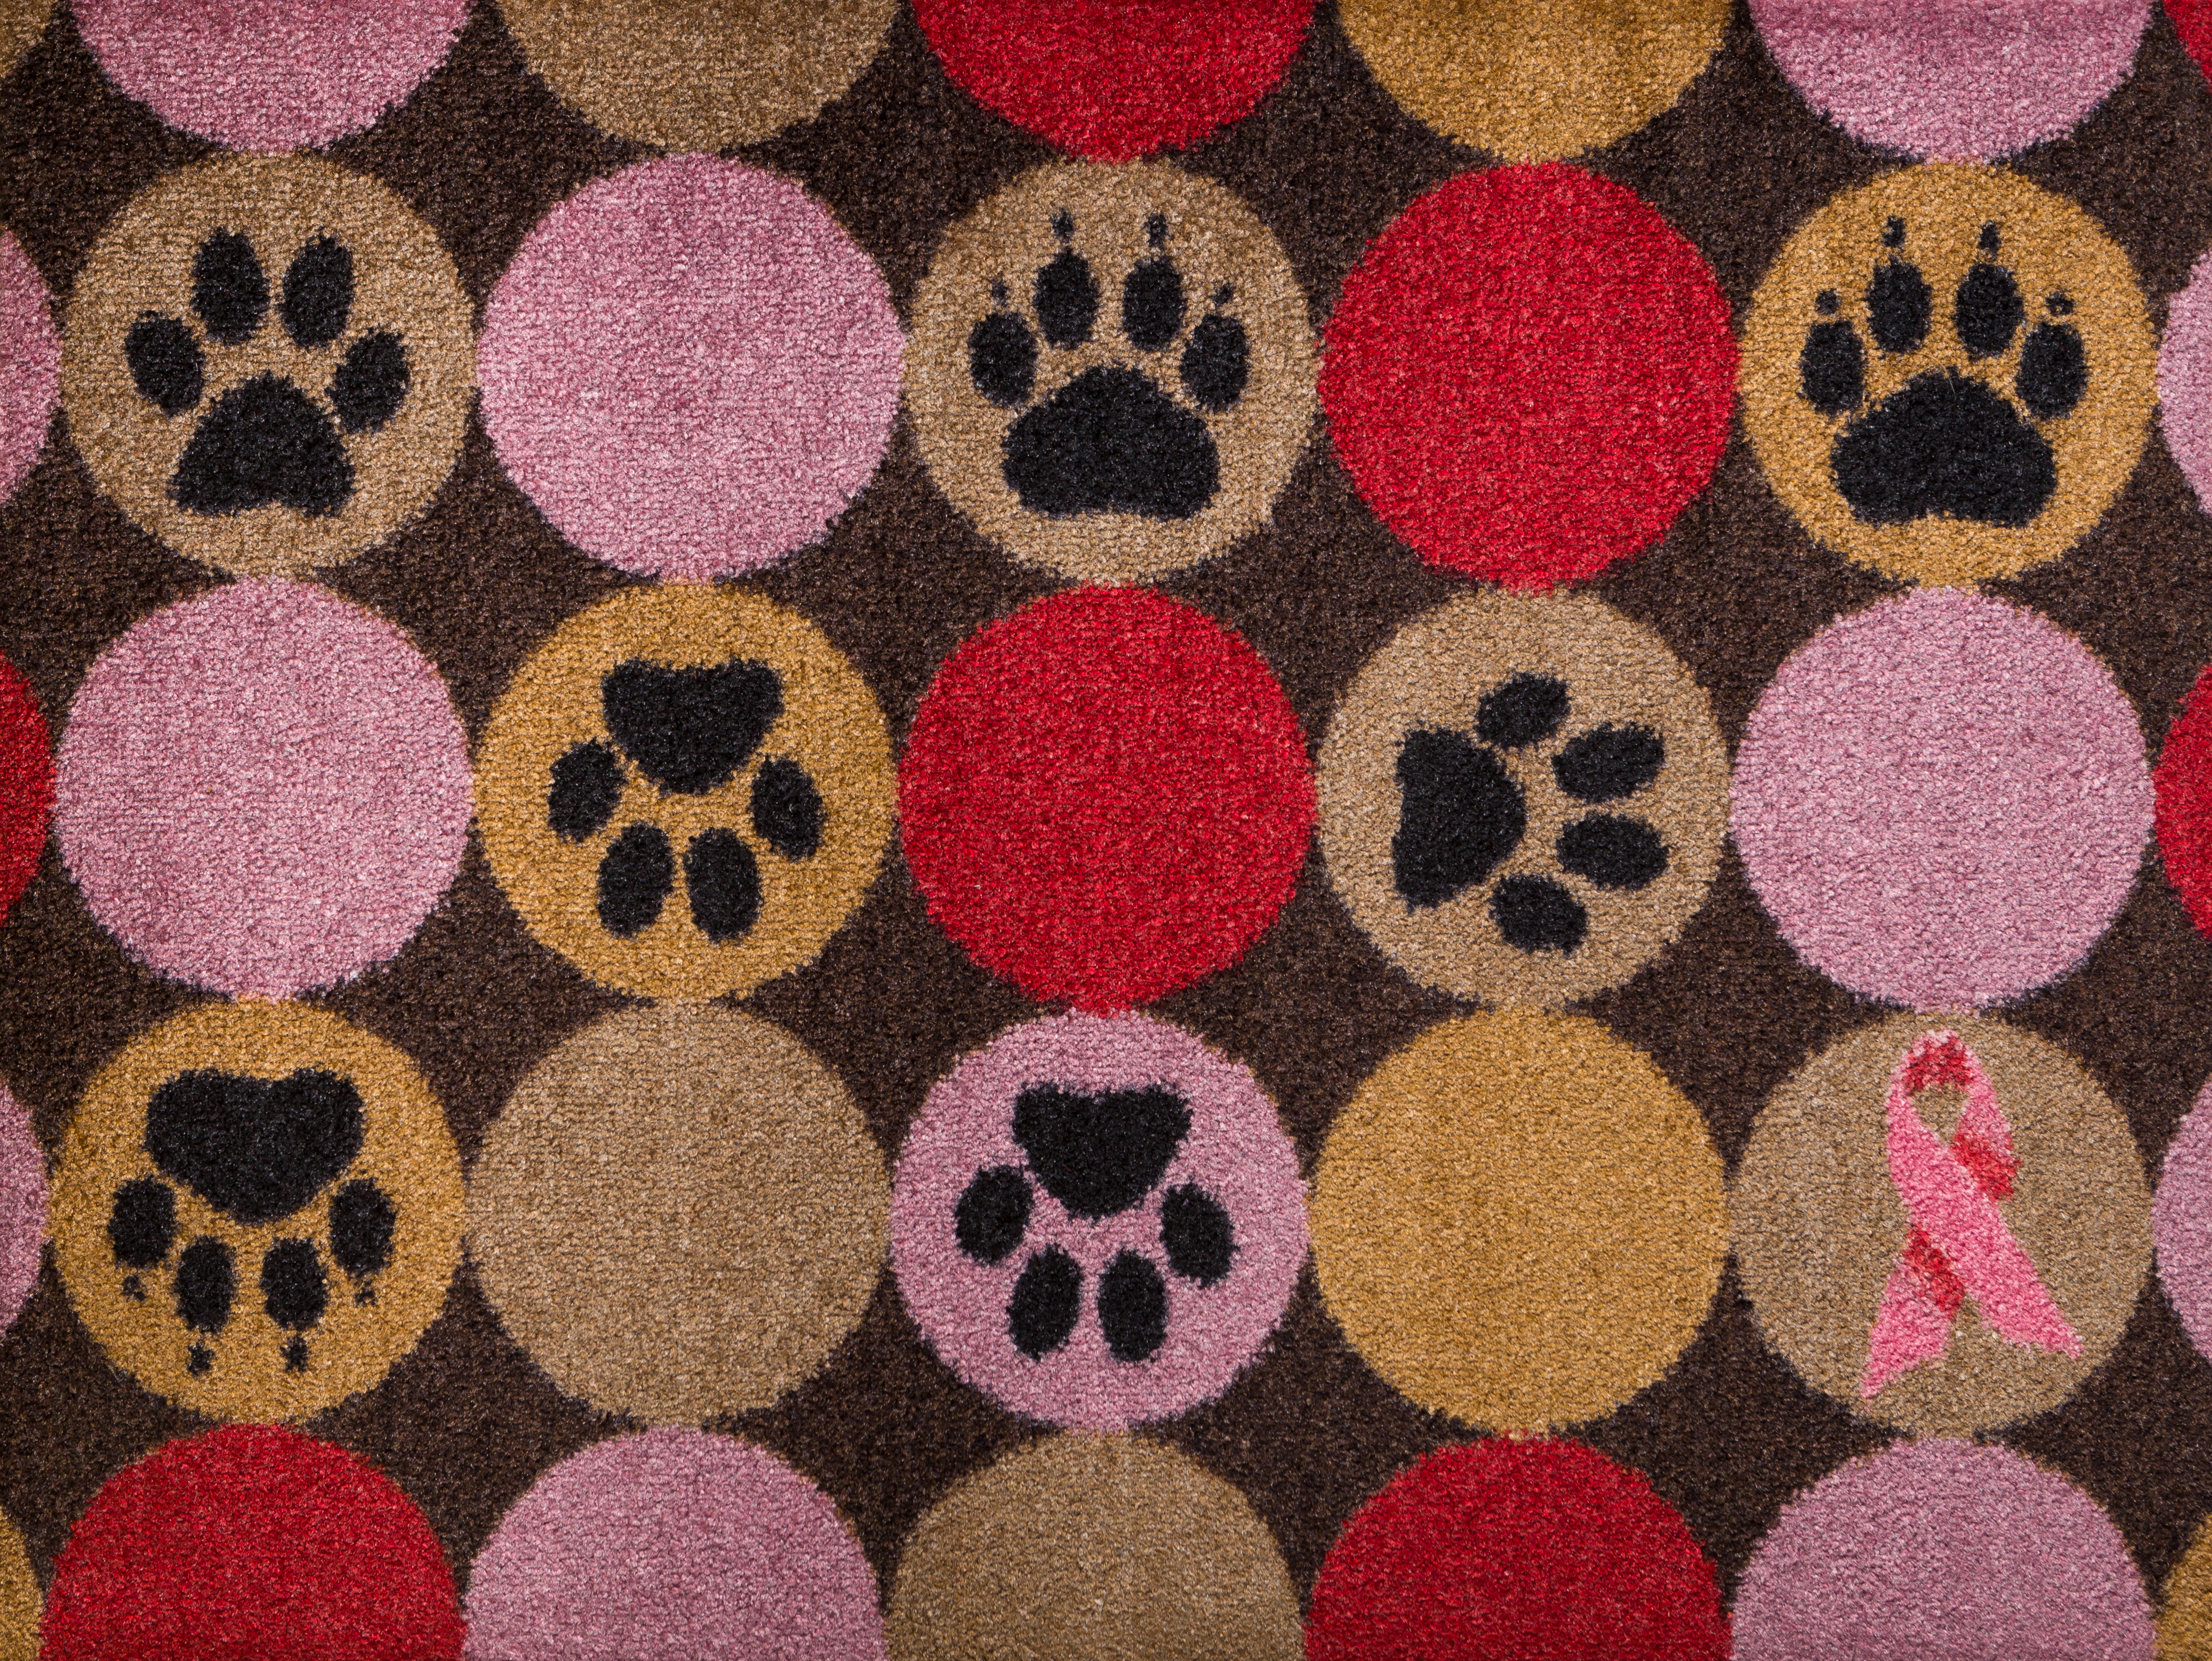 2017 Carpet One Floor & Home's Welcome a Cure Pink Ribbon Mat Collection